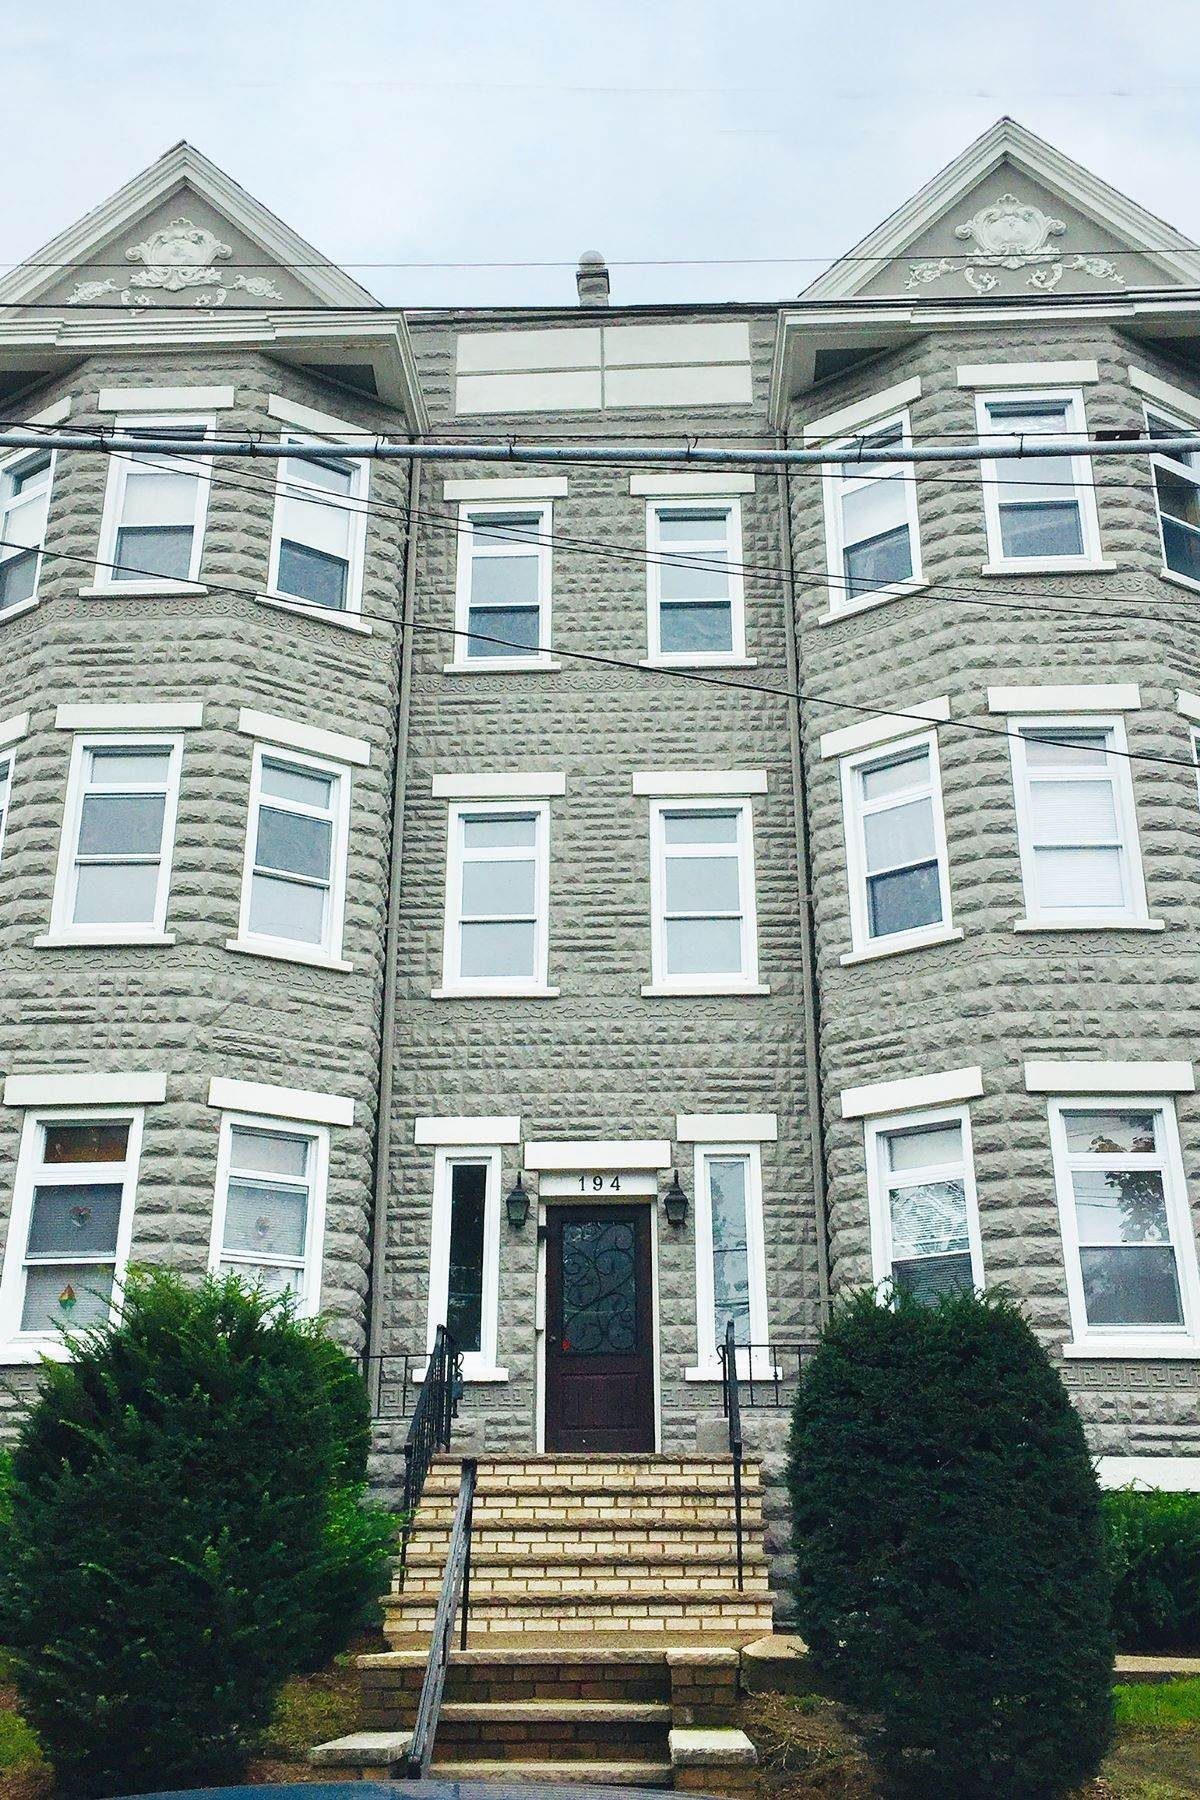 Apartments alle None 194 Uhland Street, #1, East Rutherford, New Jersey 07073 Stati Uniti